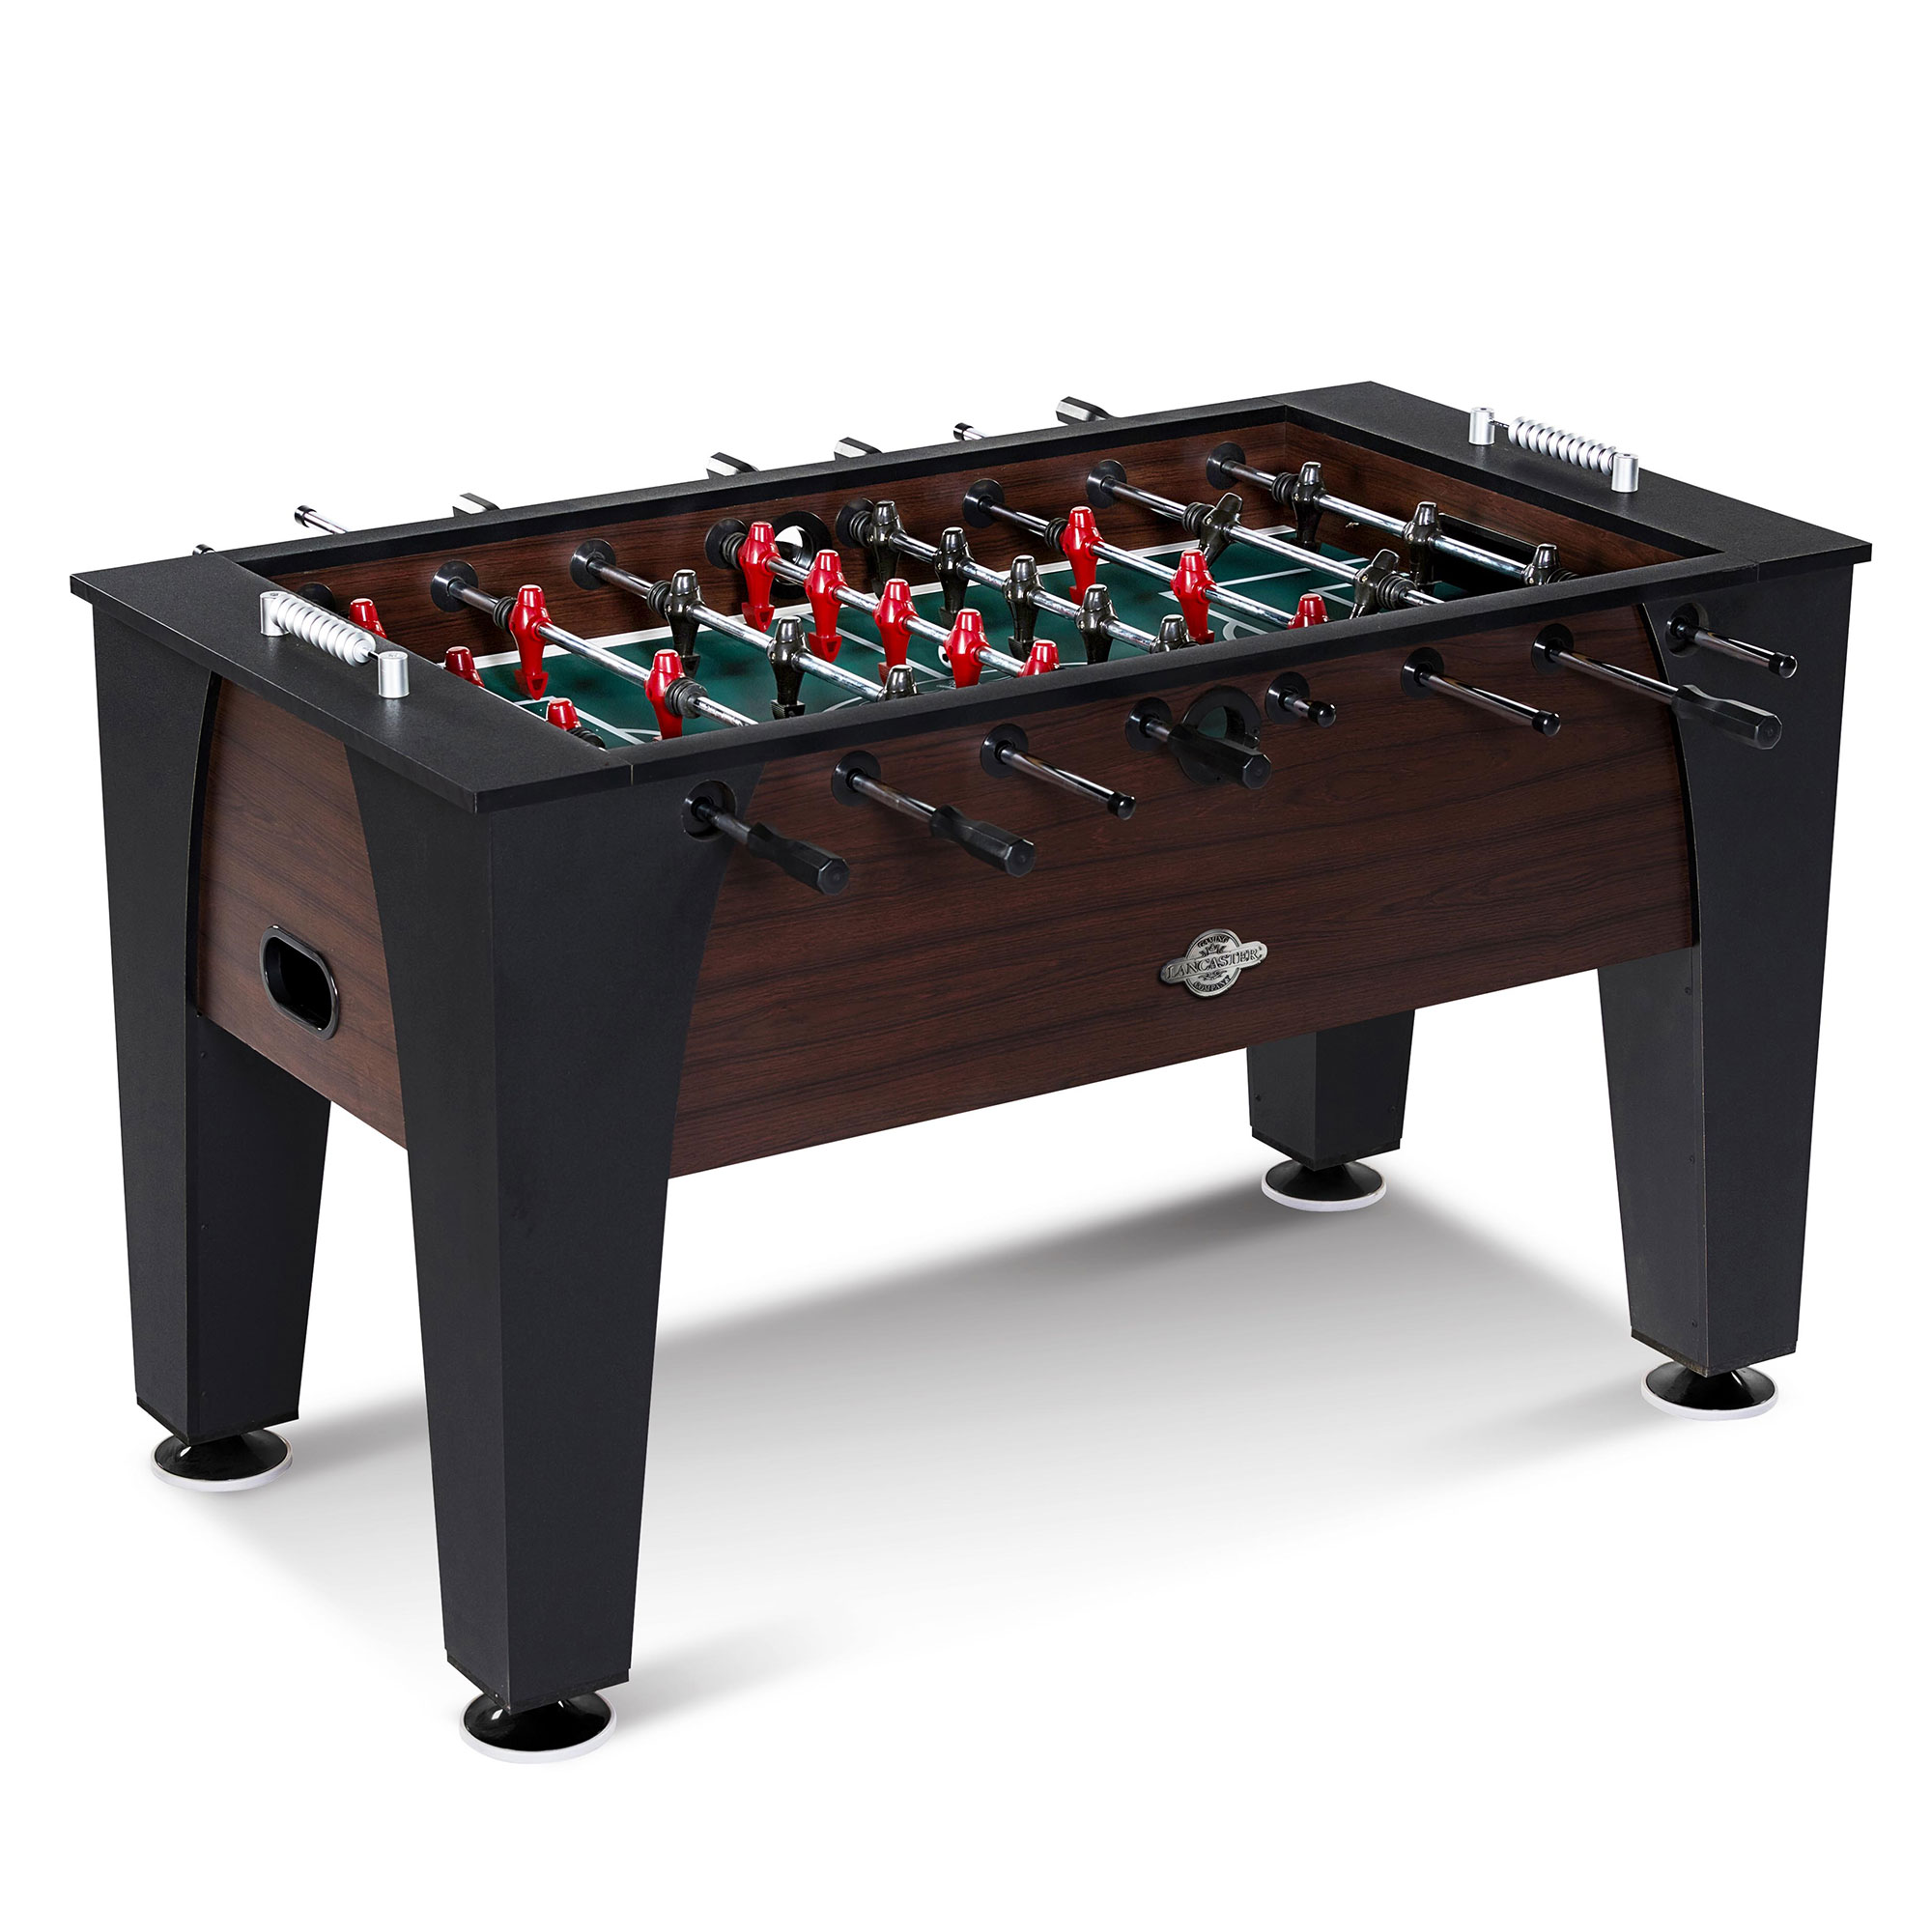 Lancaster 54 Inch Foosball Soccer Game Room Competition Sports Arcade Table by Lancaster Gaming Company